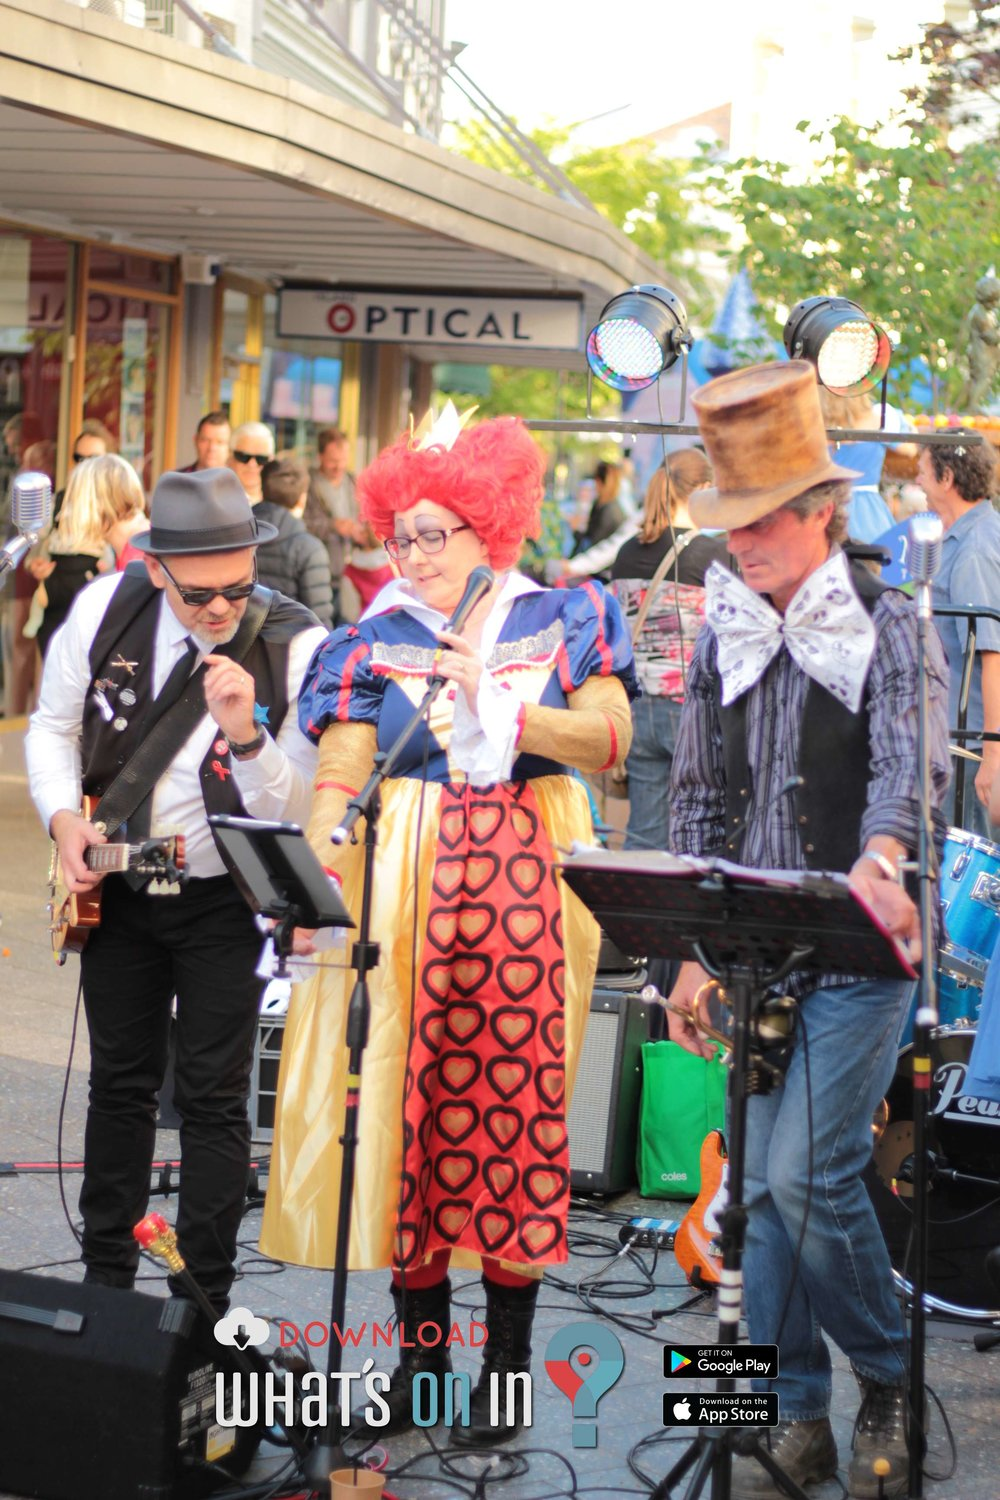 Mad Hatter's Twilight Markets, Launceston, Tasmania 2016 - What's On In App 002 IMG_8438.jpg